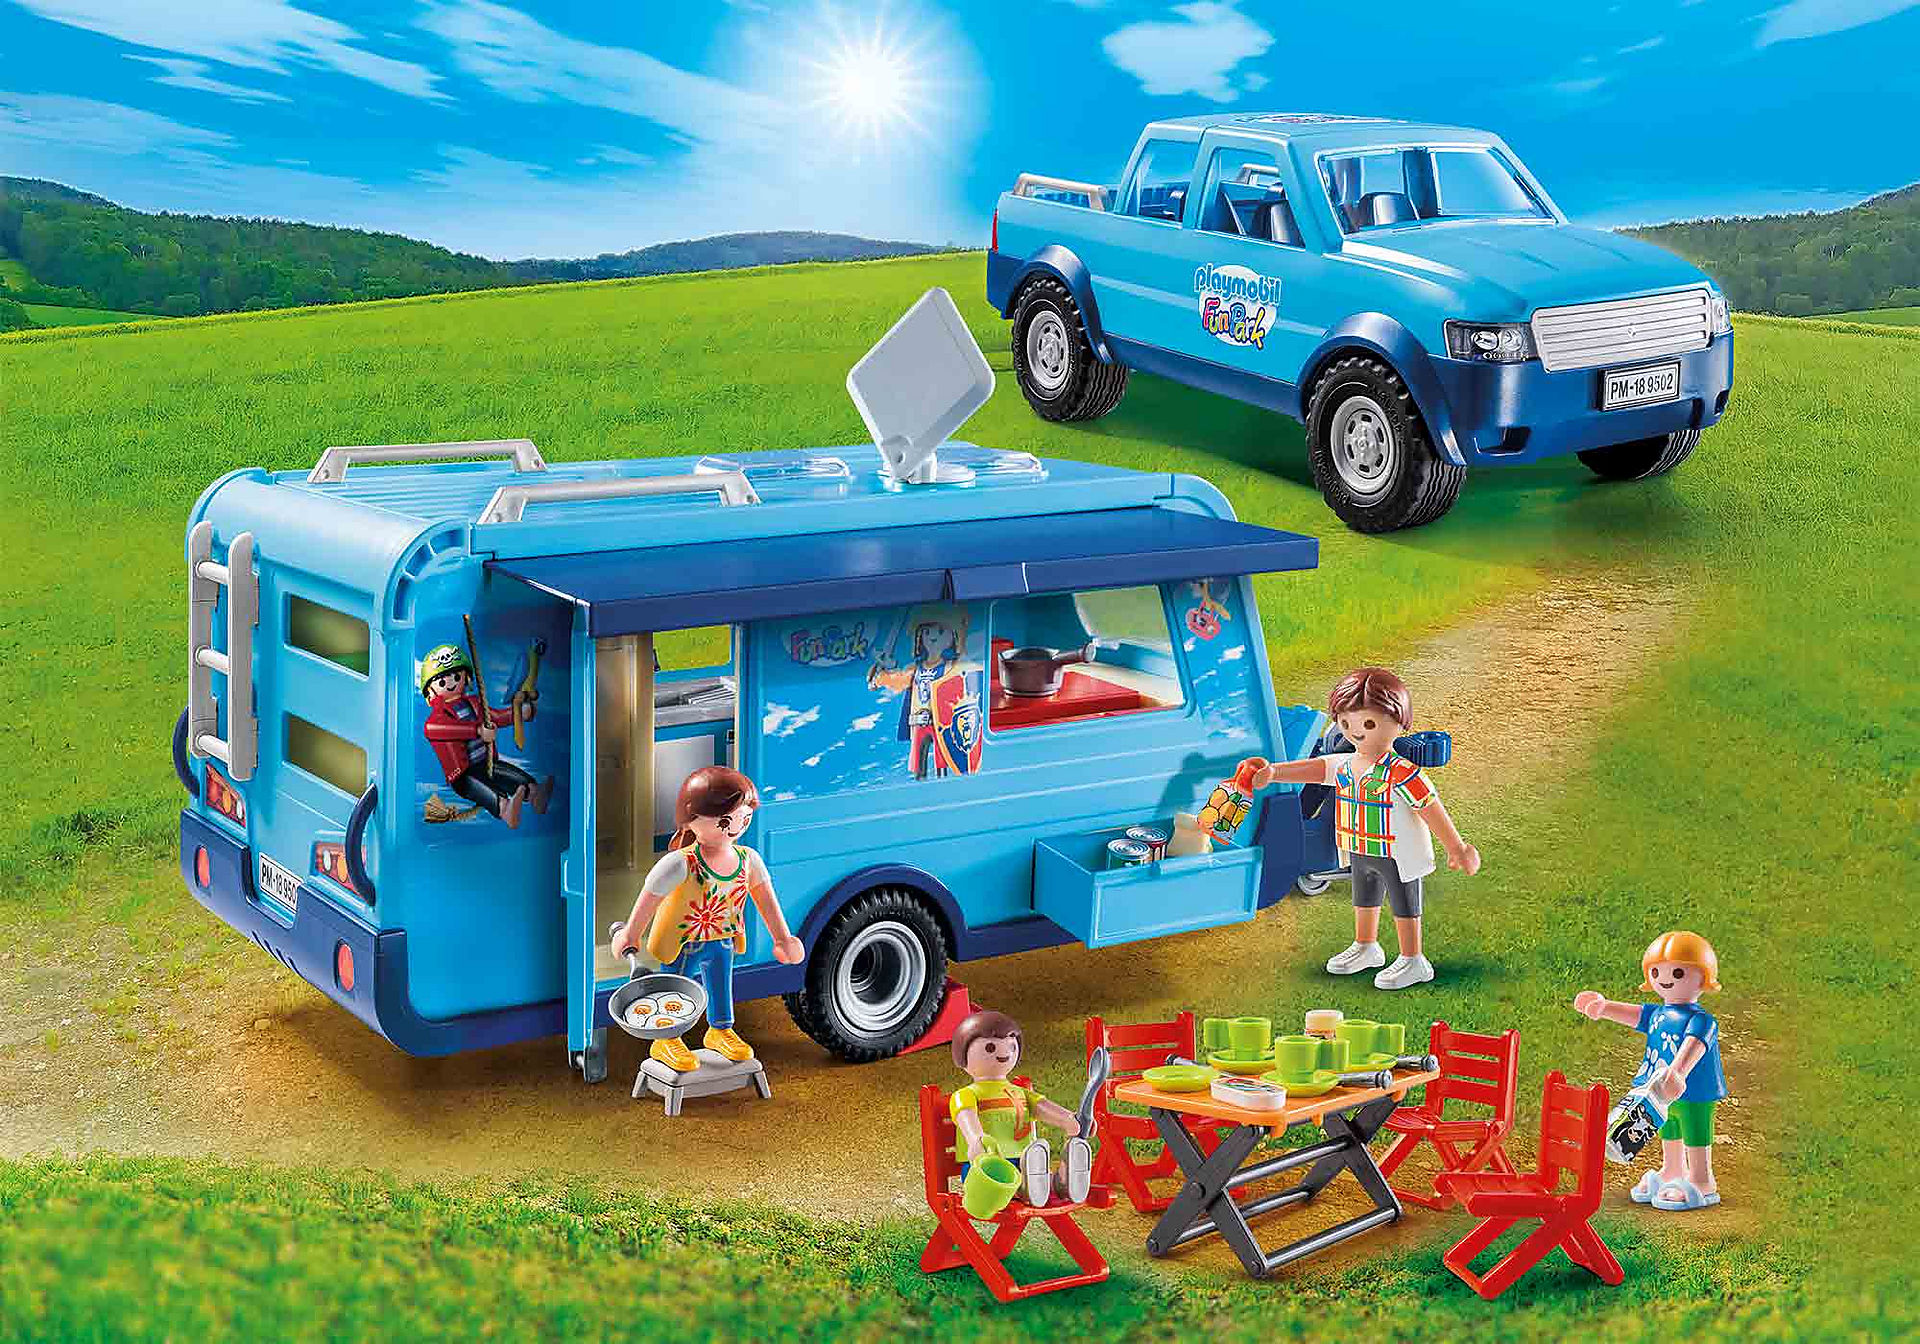 http://media.playmobil.com/i/playmobil/9502_product_detail/Playmobil-Pick-Up mit Wohnwagen